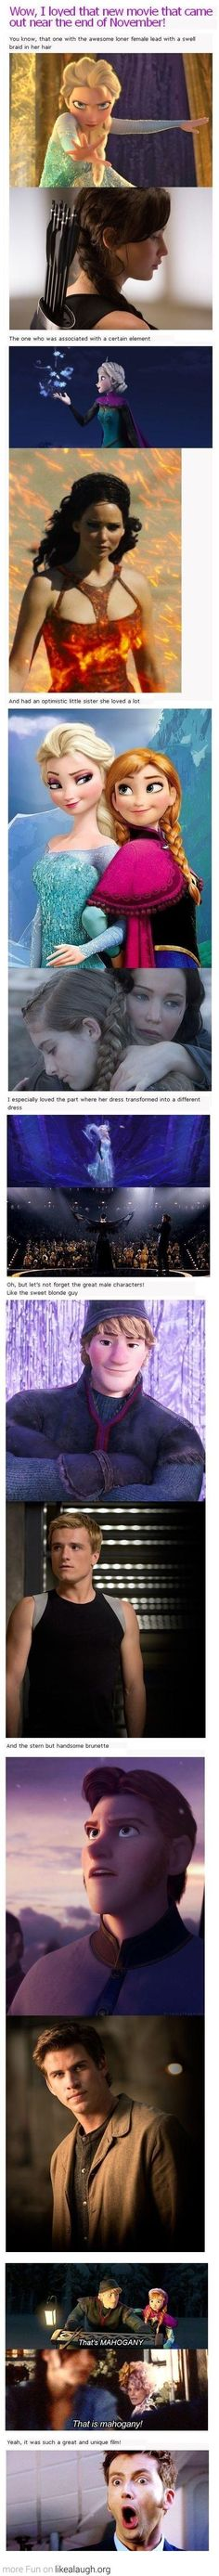 So would Olaf be Haymitch then?